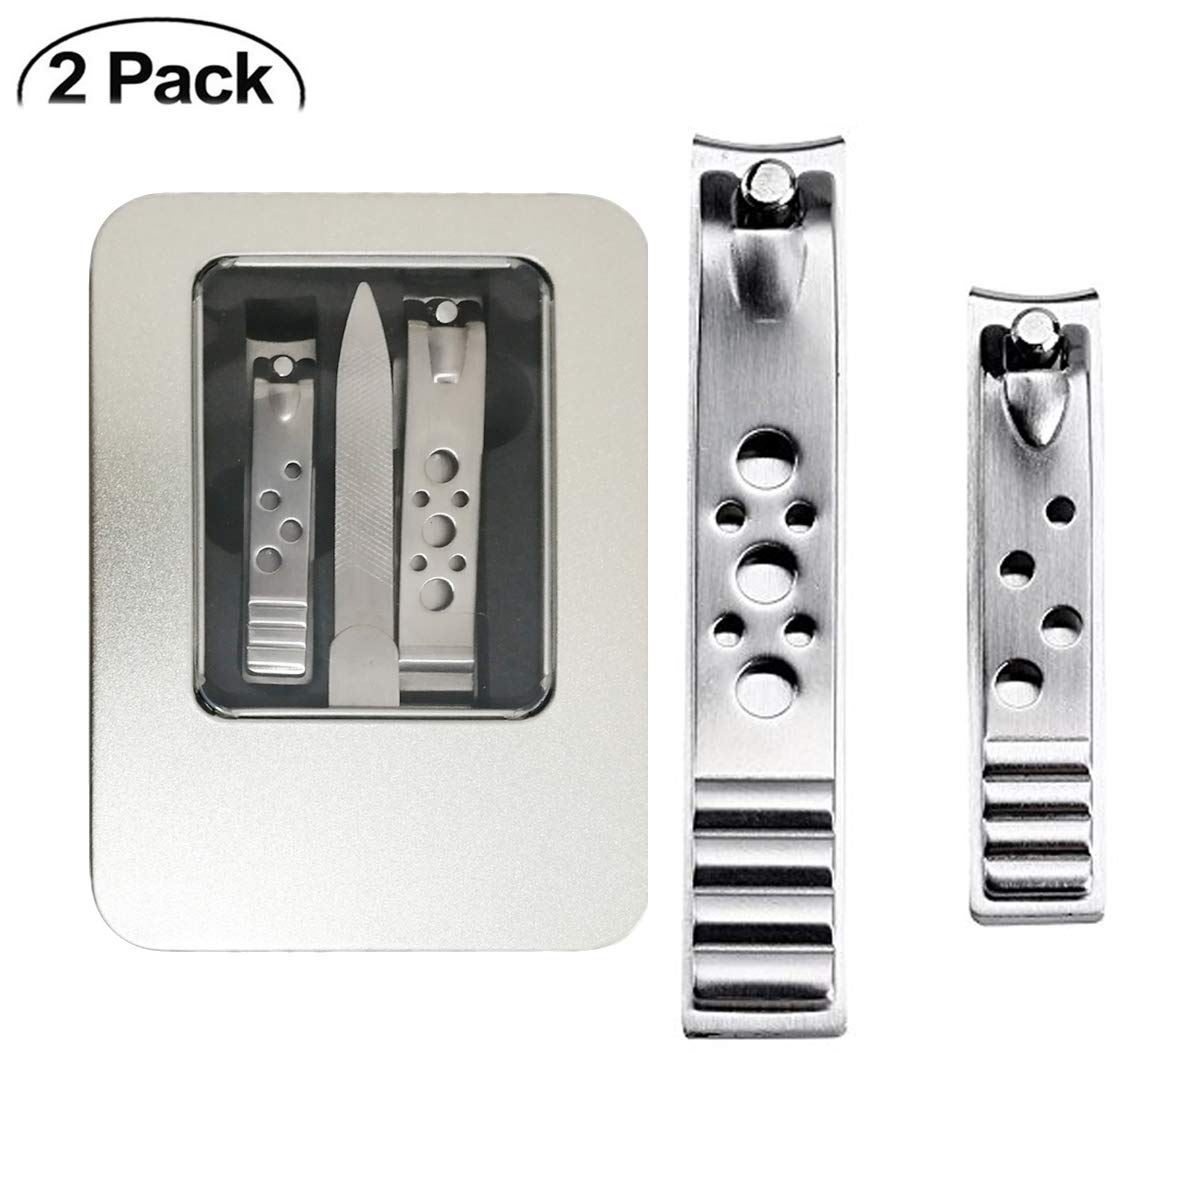 Nail Clippers Set Fingernail and Toenail Clipper Cutter,Stainless steel Heavy Duty Big Nail Clippers Cutters Set for Men & Women(2 pcs)